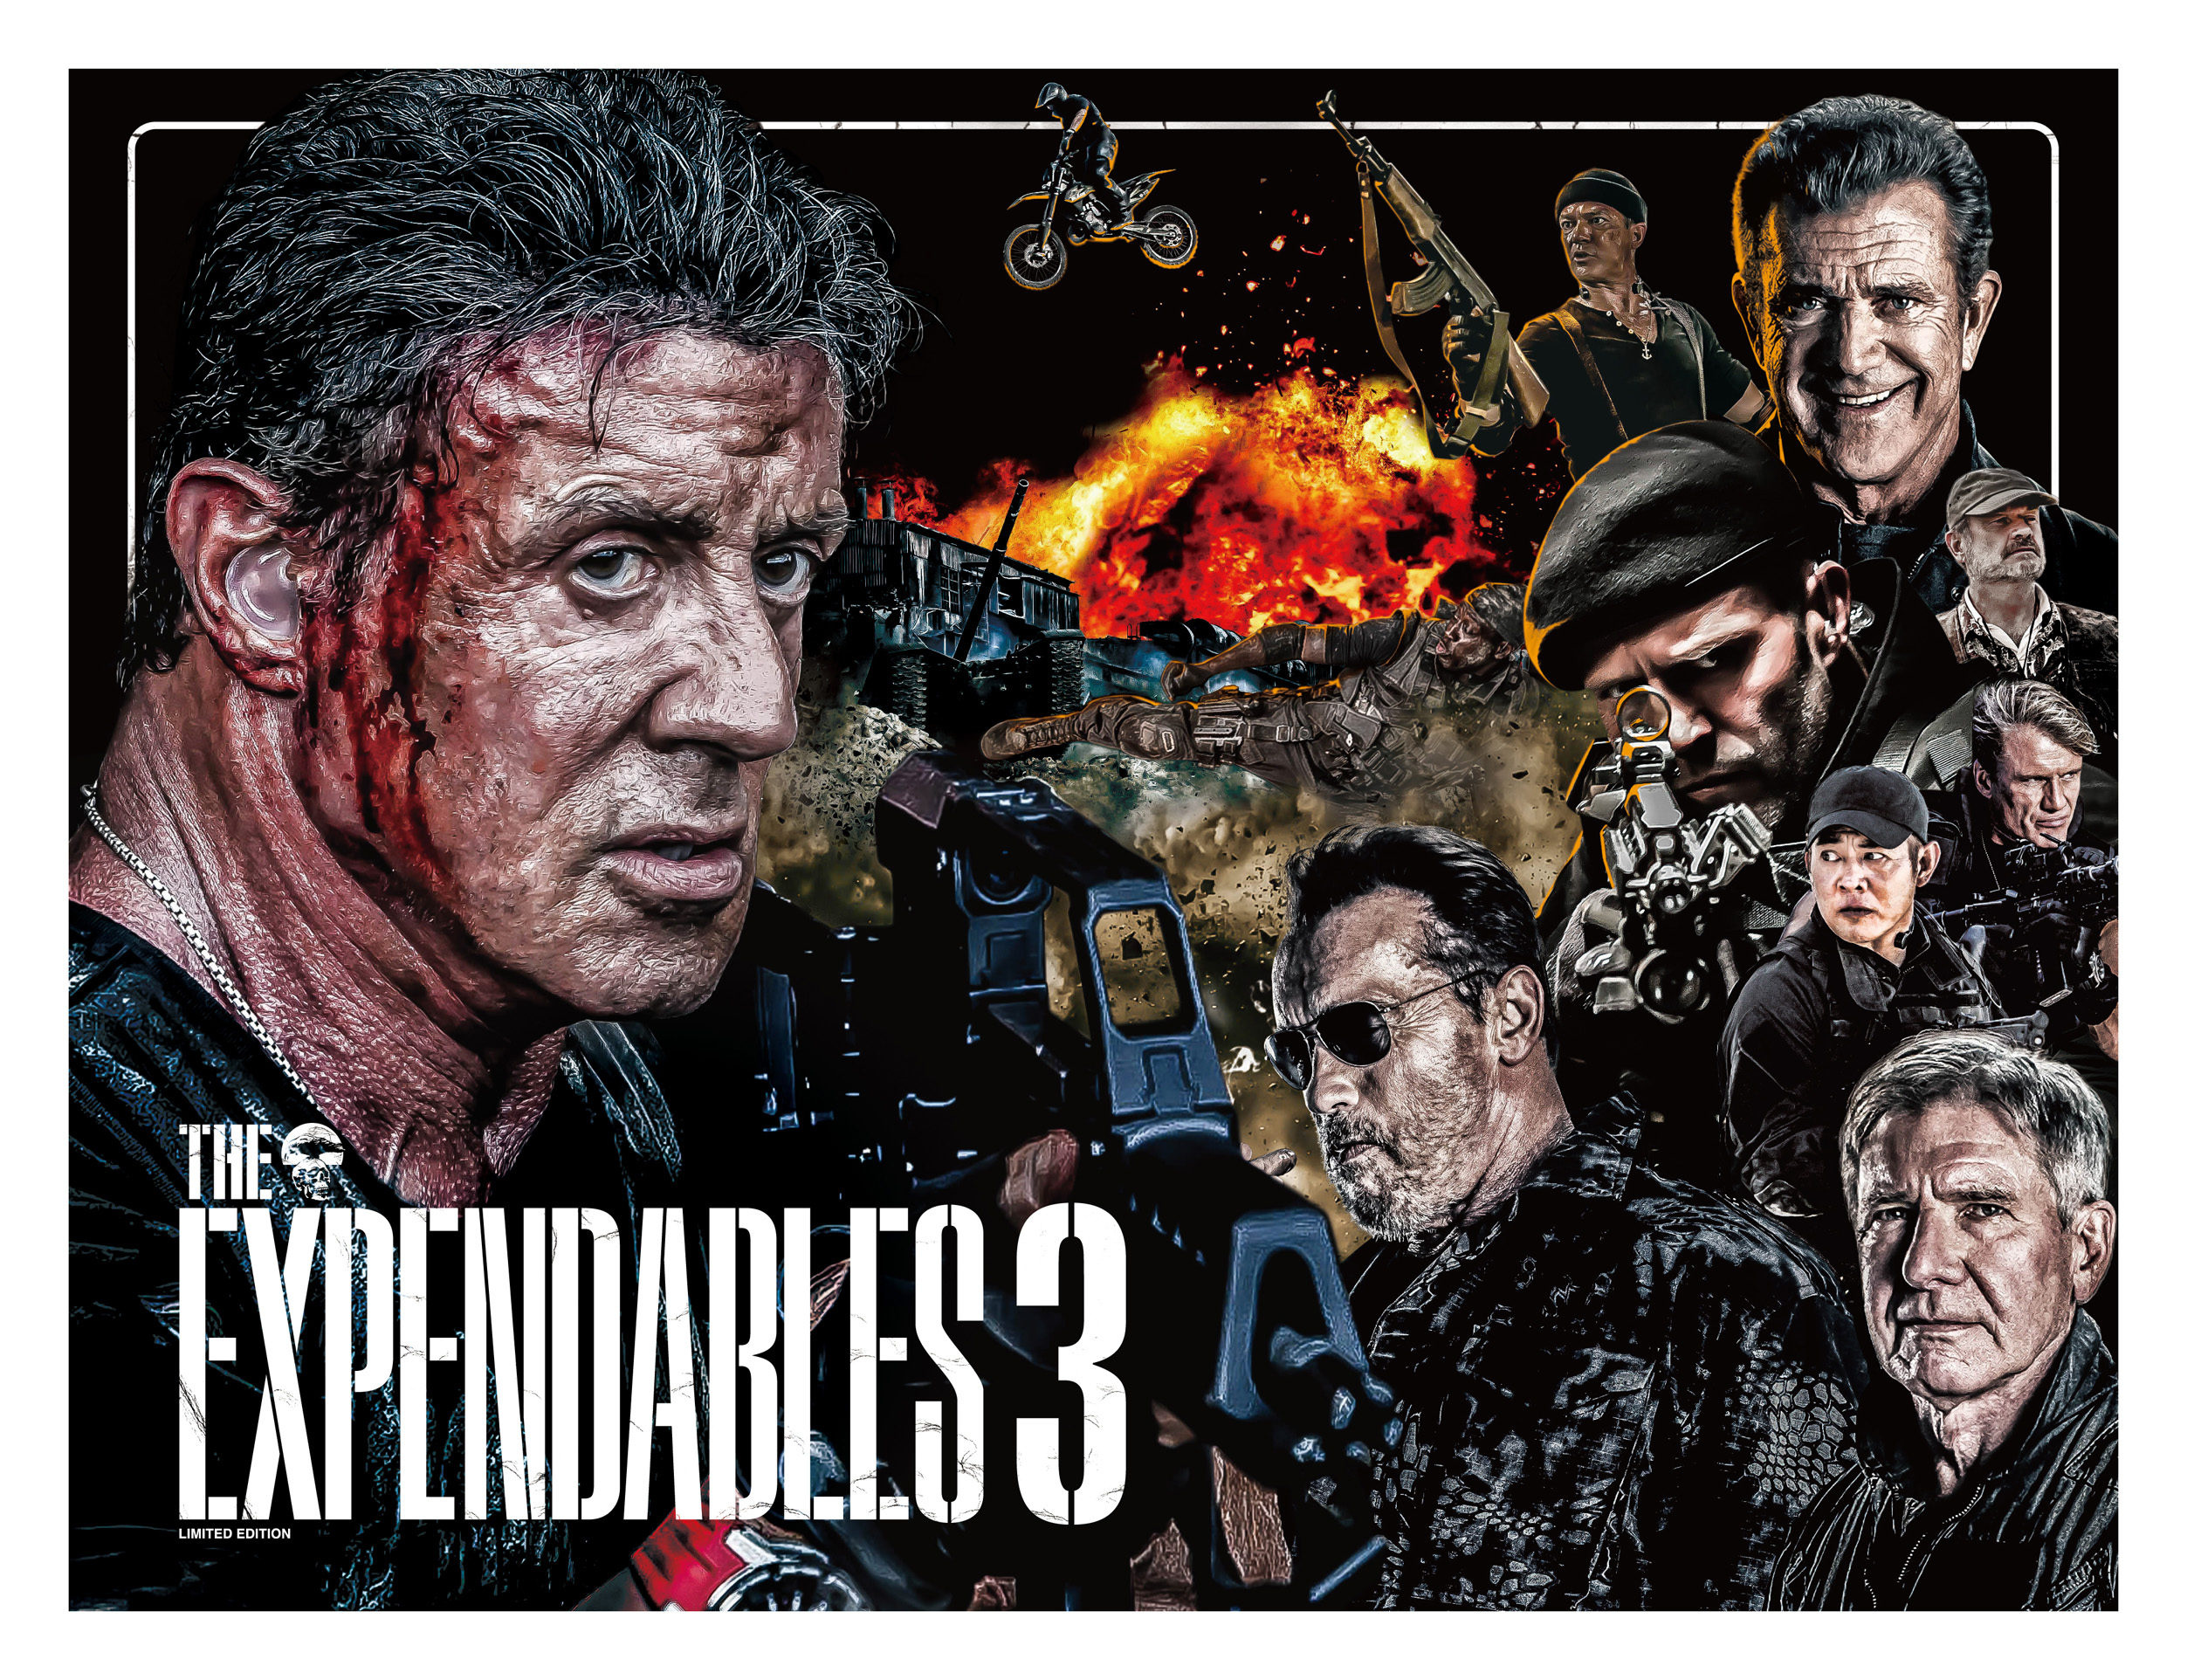 THE EXPENDABLES 3 劇場パンフレット表紙デザイン